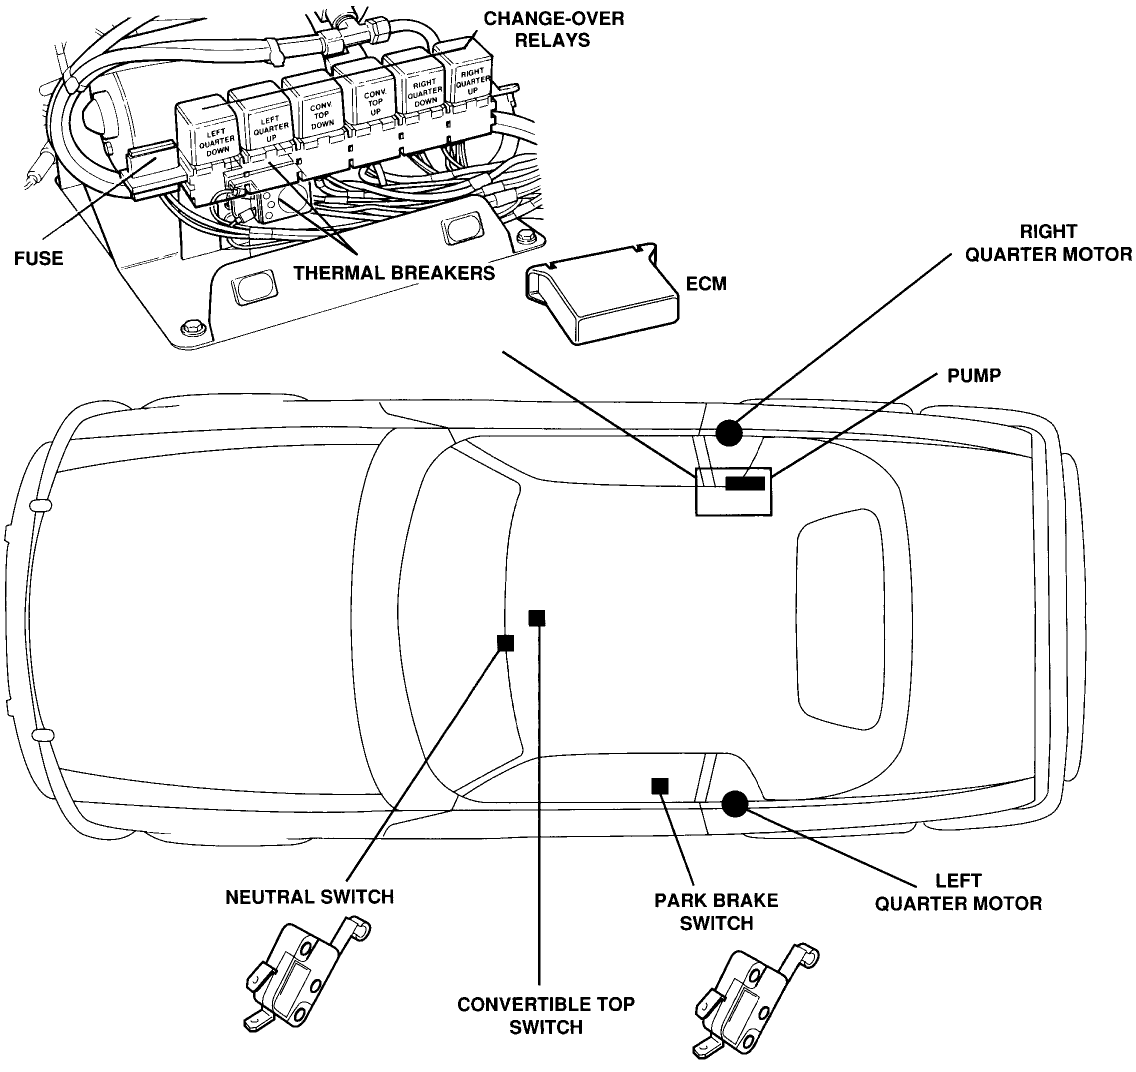 2007 chrysler sebring fuel pump relay location